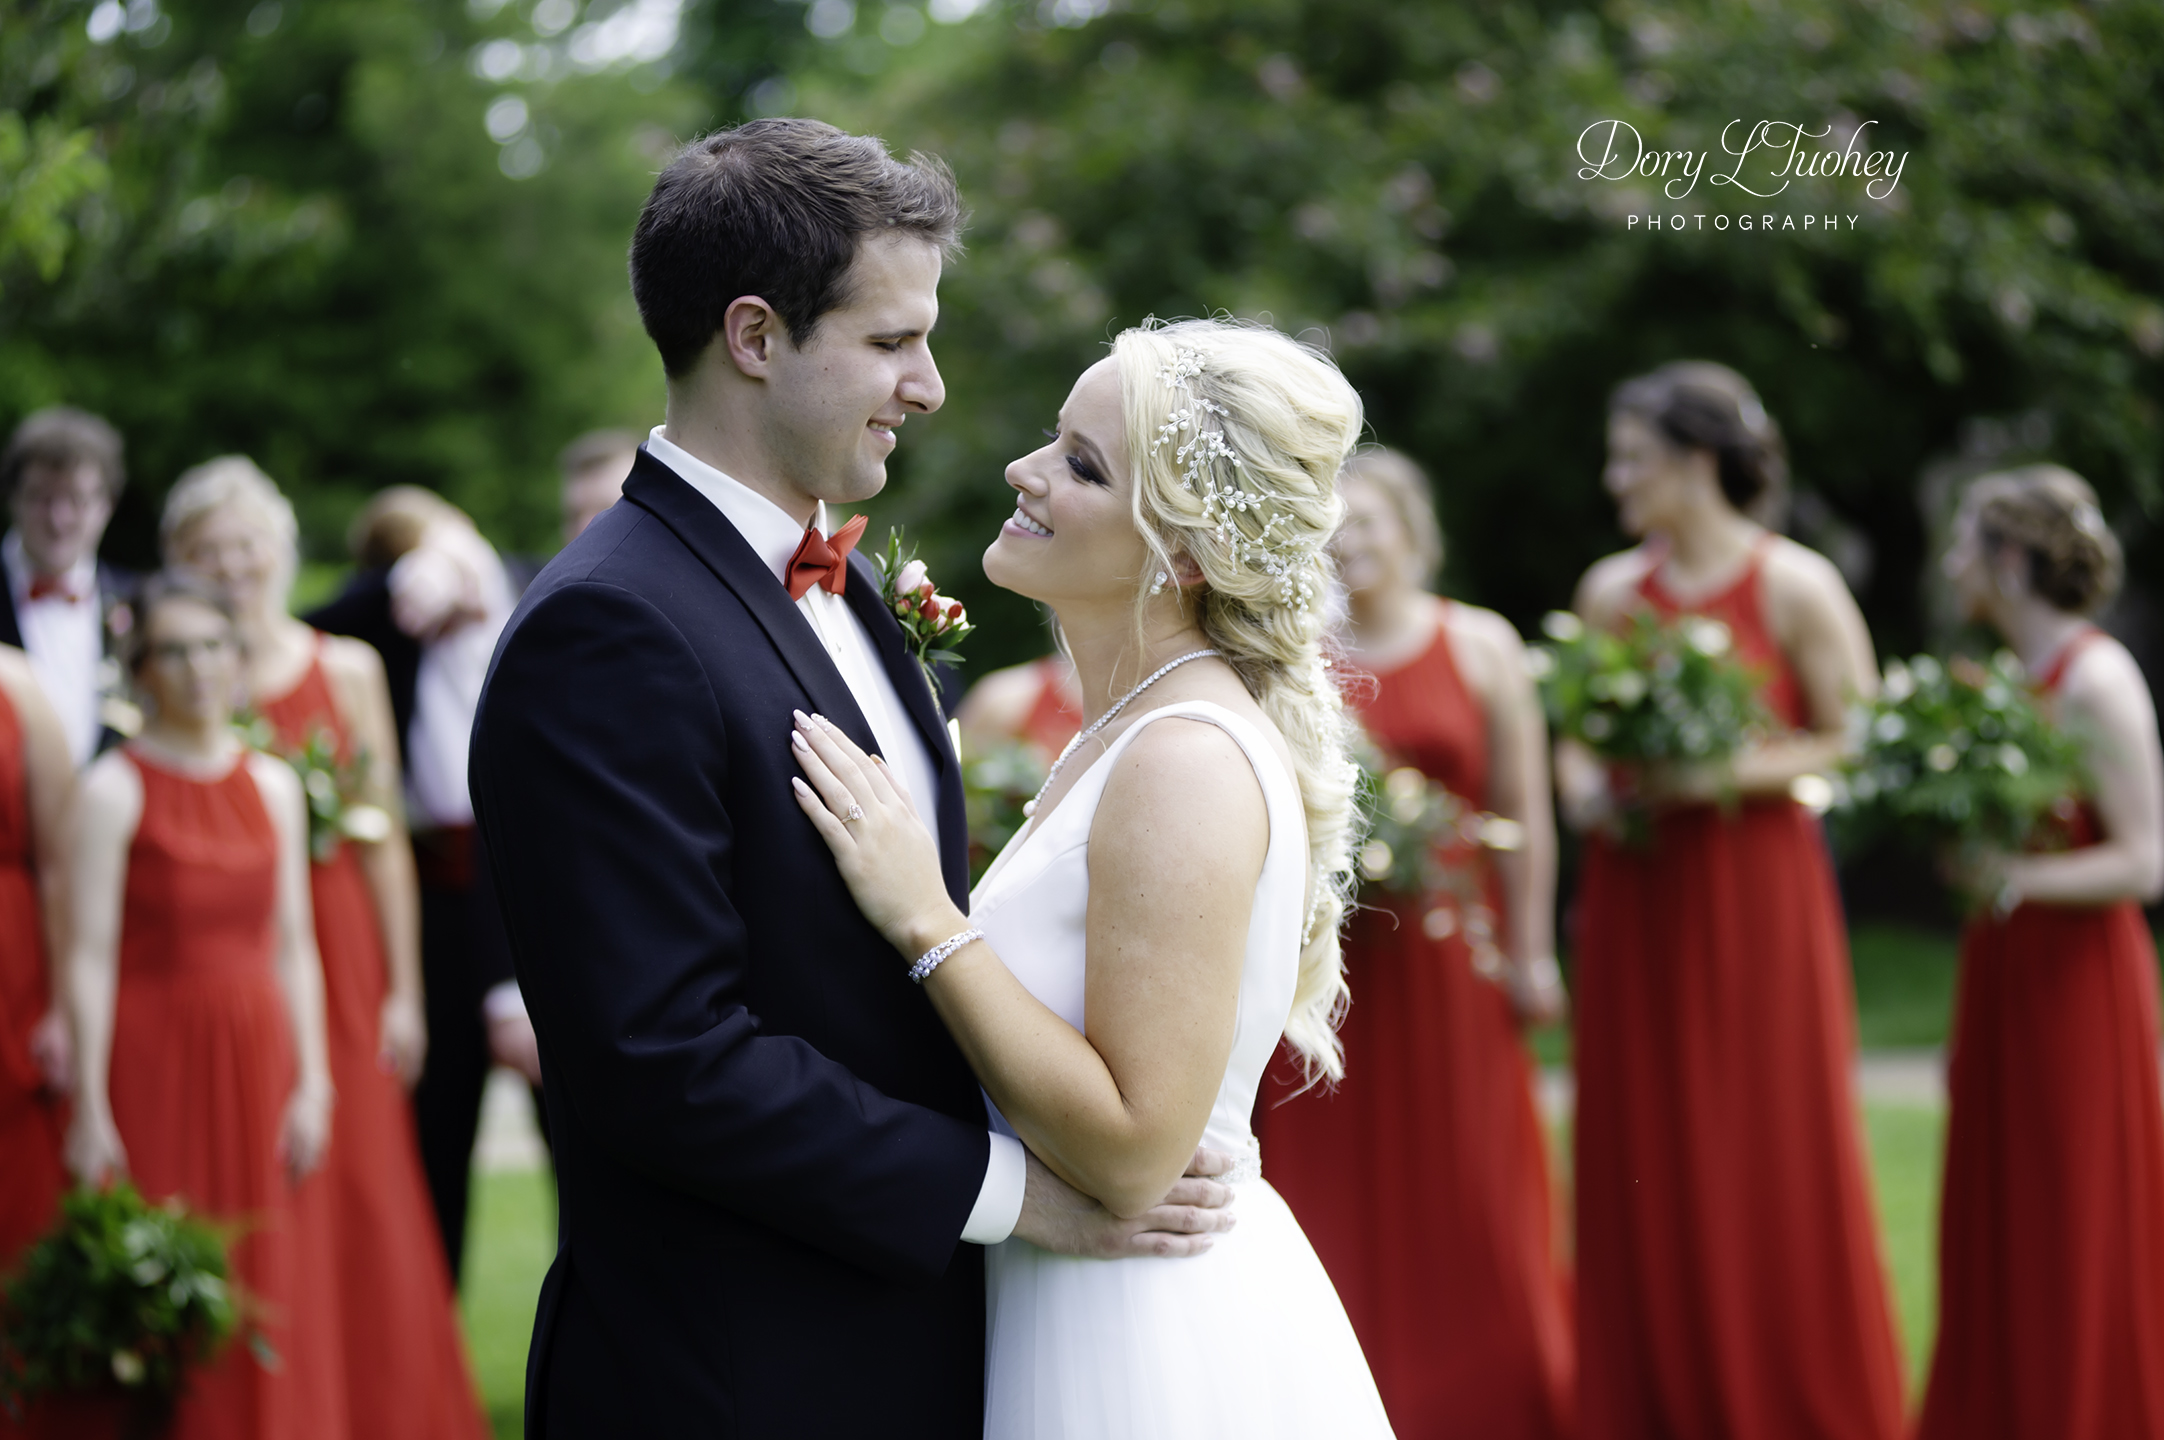 Dory_springfield_wedding_bride_red_shoes_photographer_washington_park_04.jpg